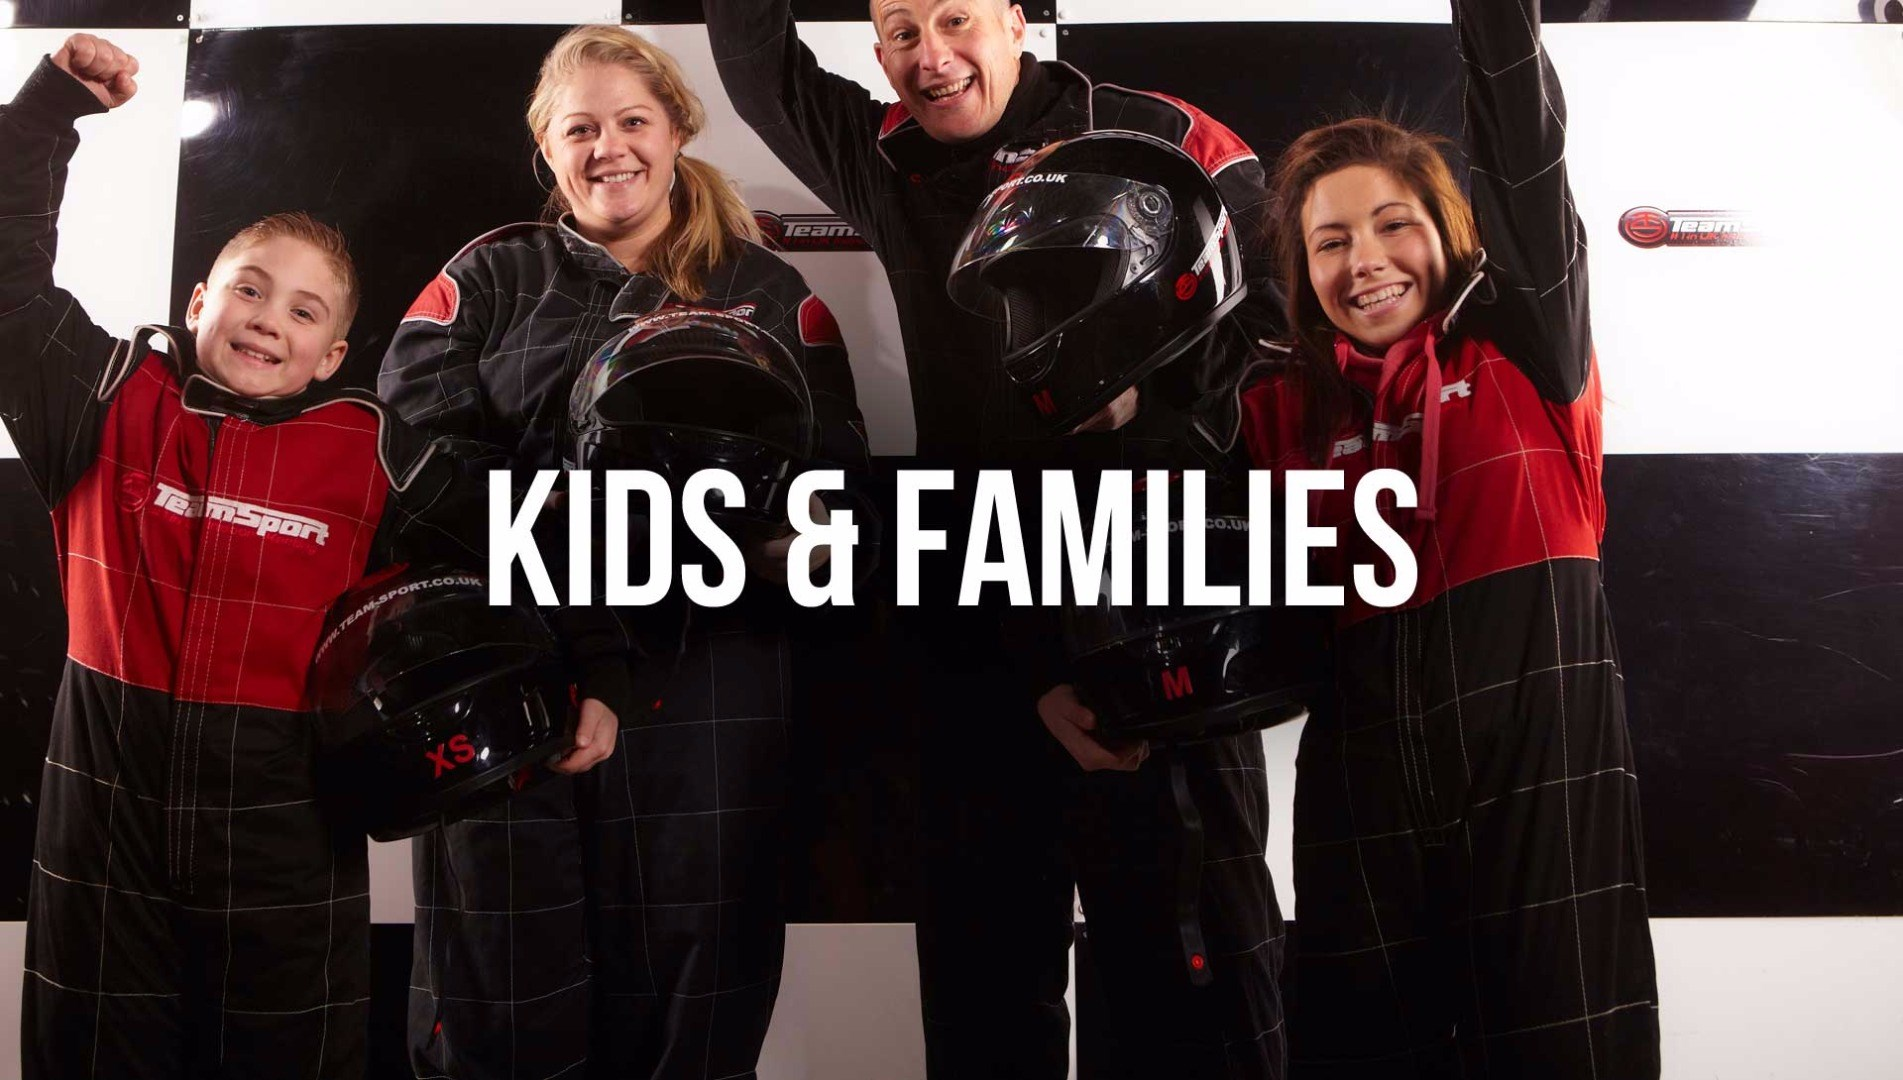 Go Kart Racing Events - Kids & Families